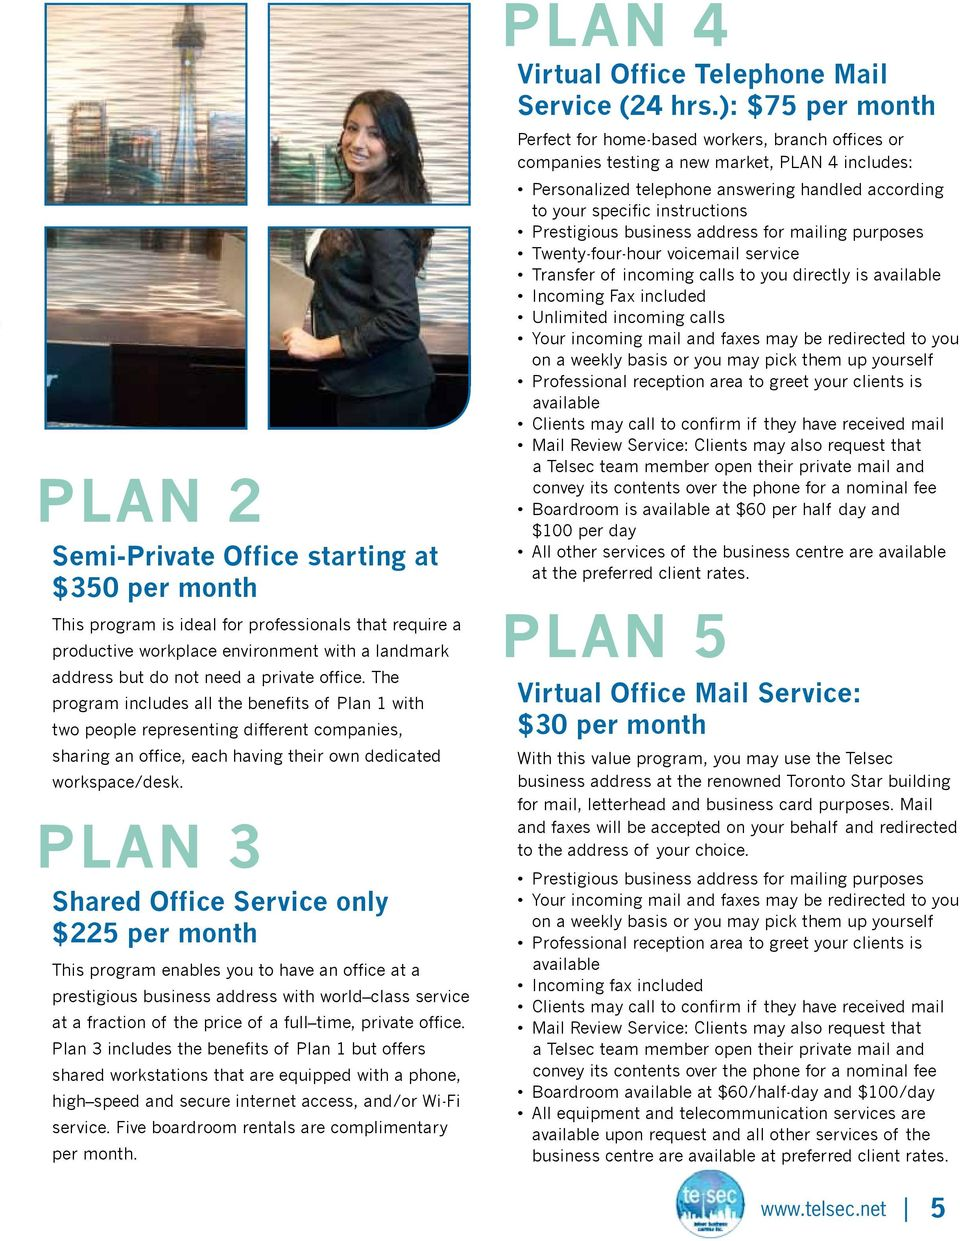 PLAN 3 Shared Office Service only $225 per month This program enables you to have an office at a prestigious business address with world class service at a fraction of the price of a full time,